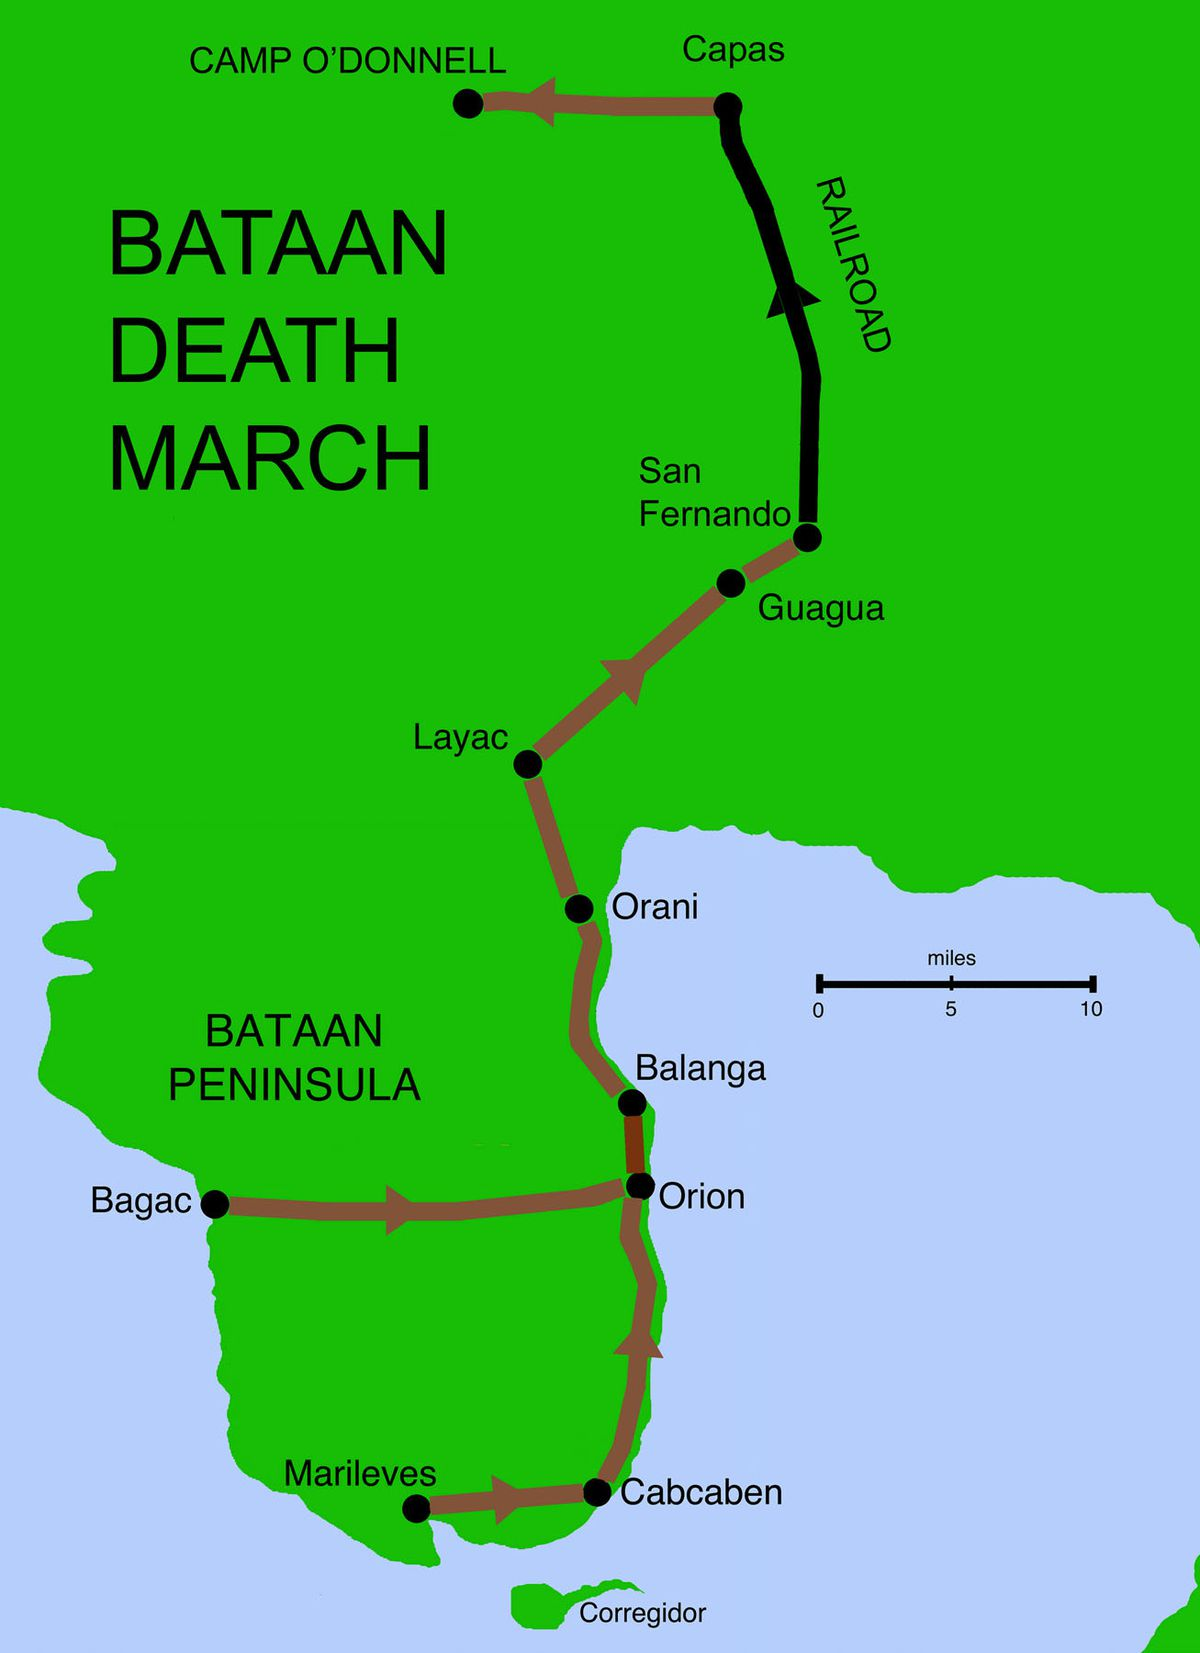 Japanese kill thousands in the Bataan Death March